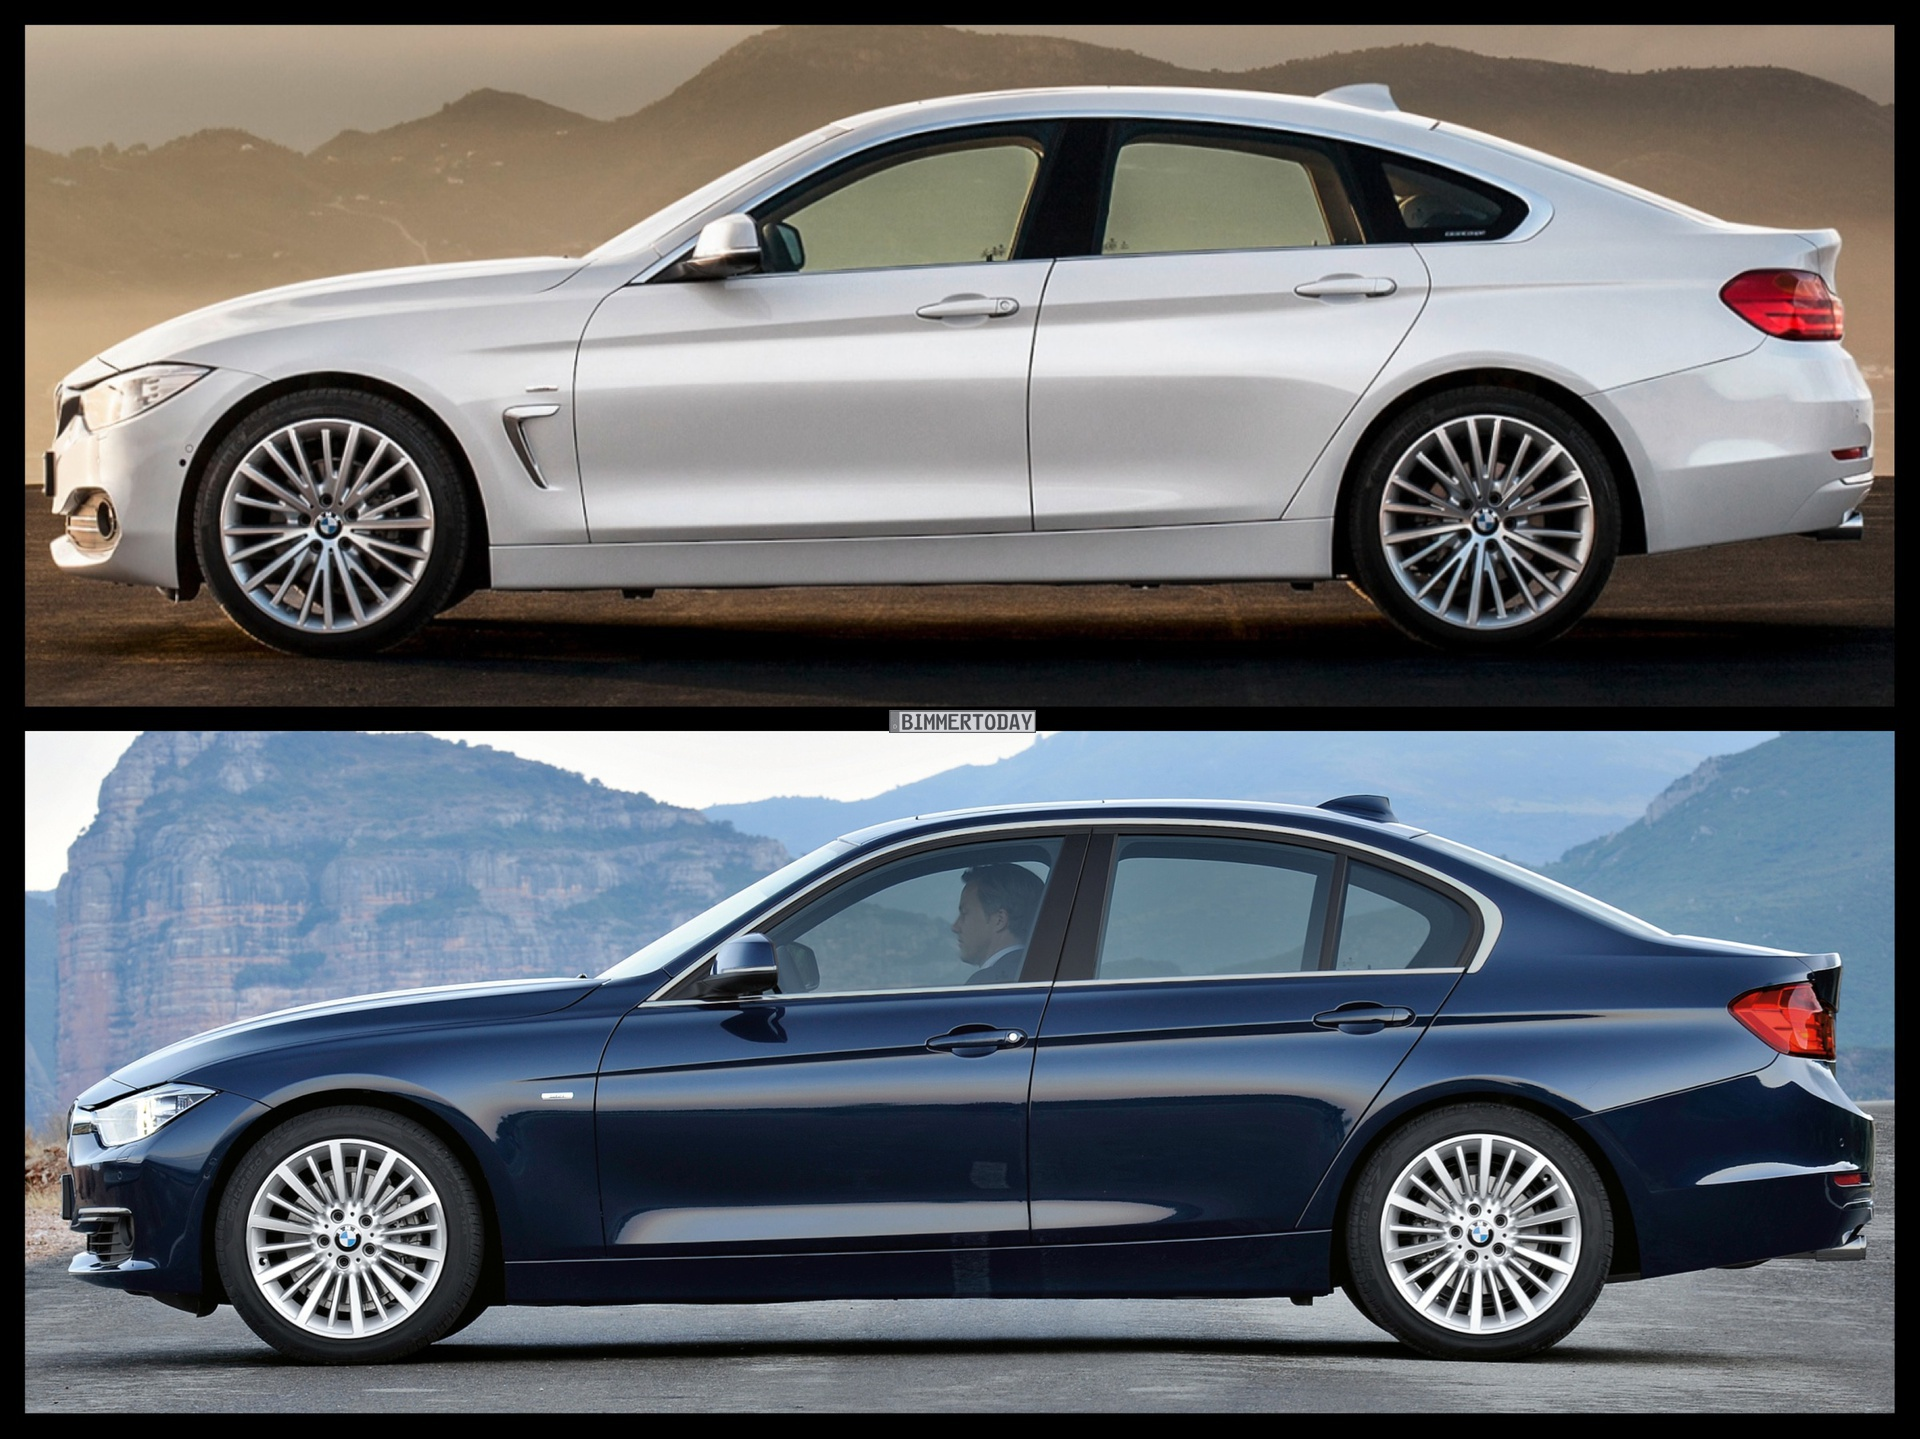 Sedan Vs Coupe >> Bmw 4 Series Gran Coupe Vs Bmw 3 Series Sedan